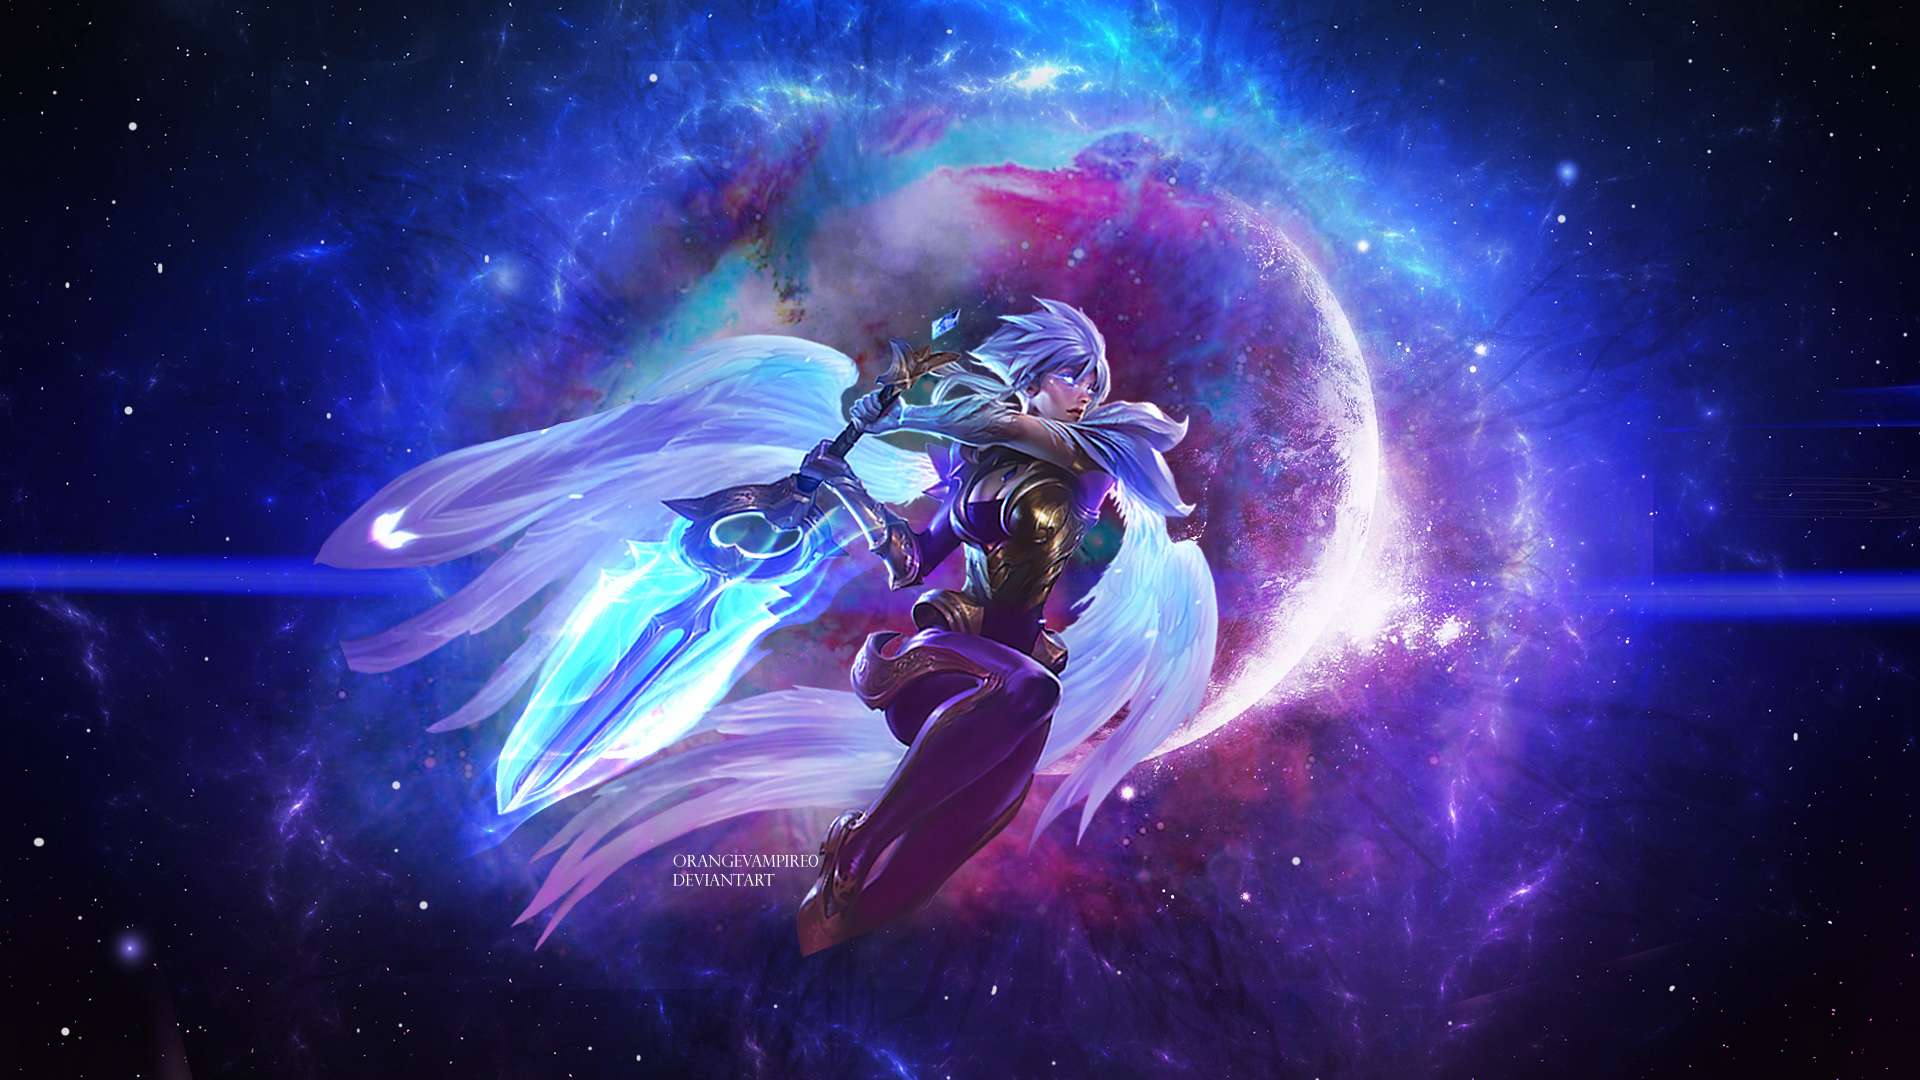 Dawnbringer Riven Wallpaper League of Legends by ...